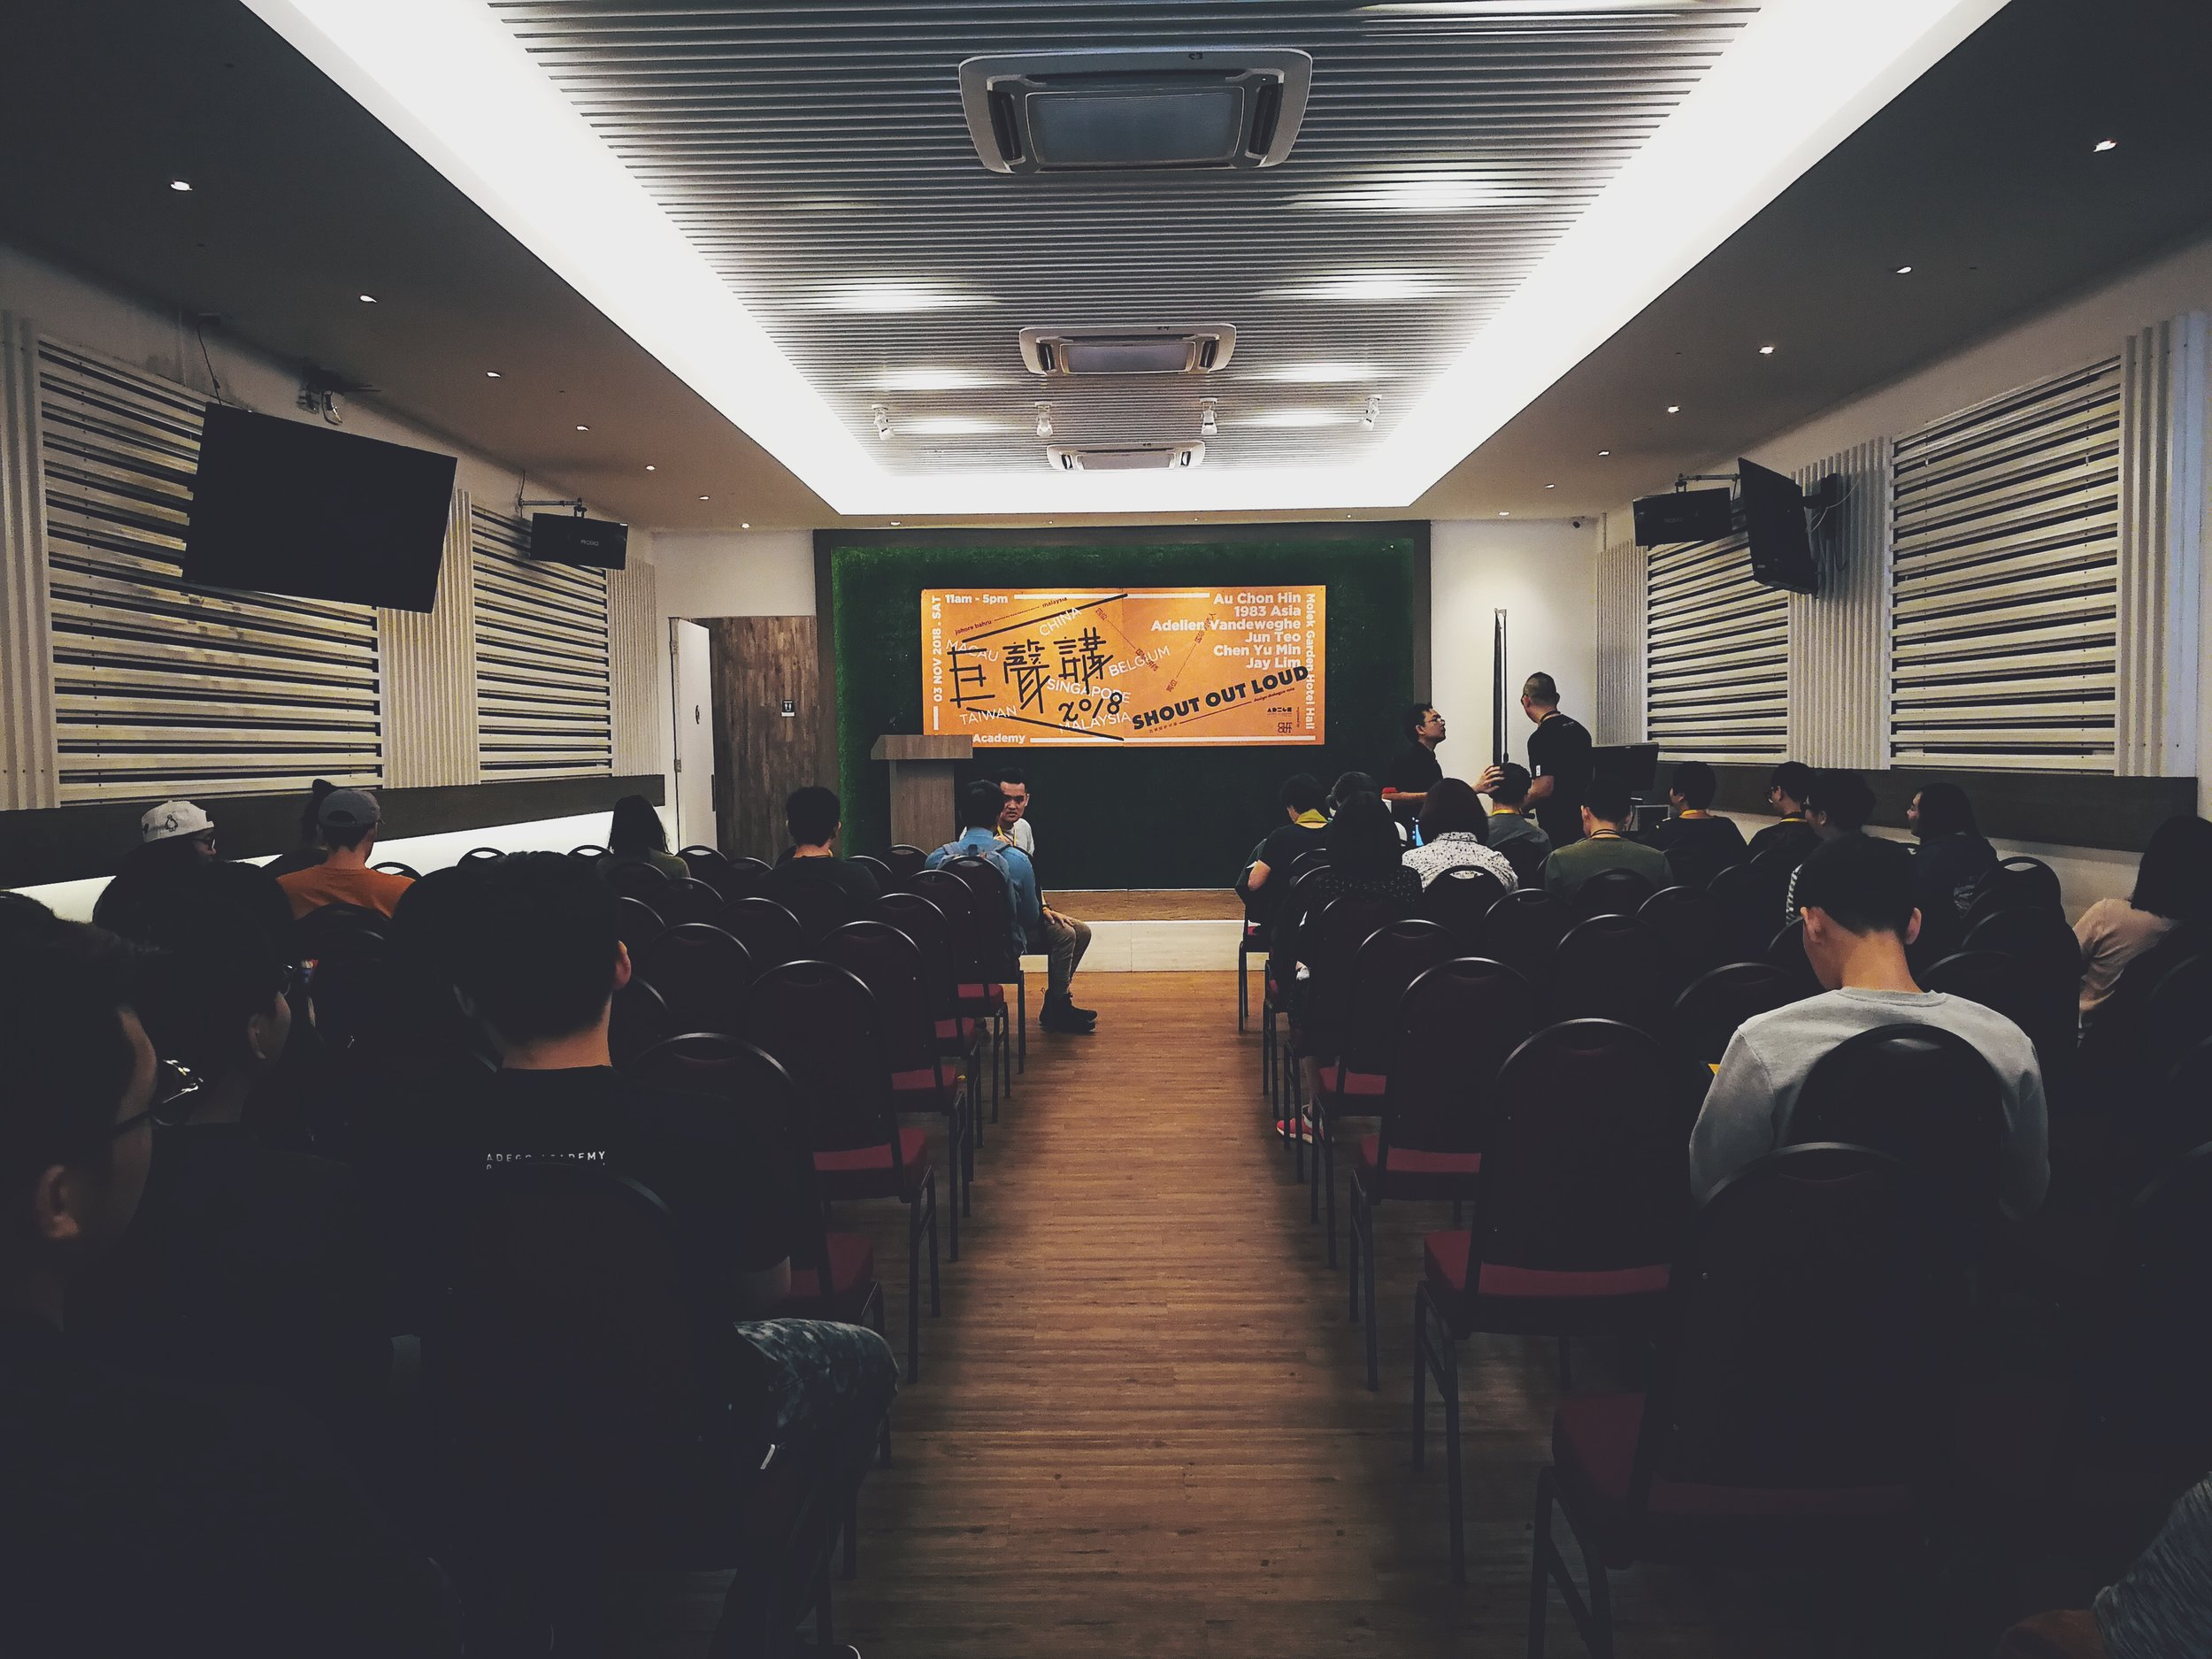 Creatives flocked to the event hall at Hotel Taman Molek, hours before the event.